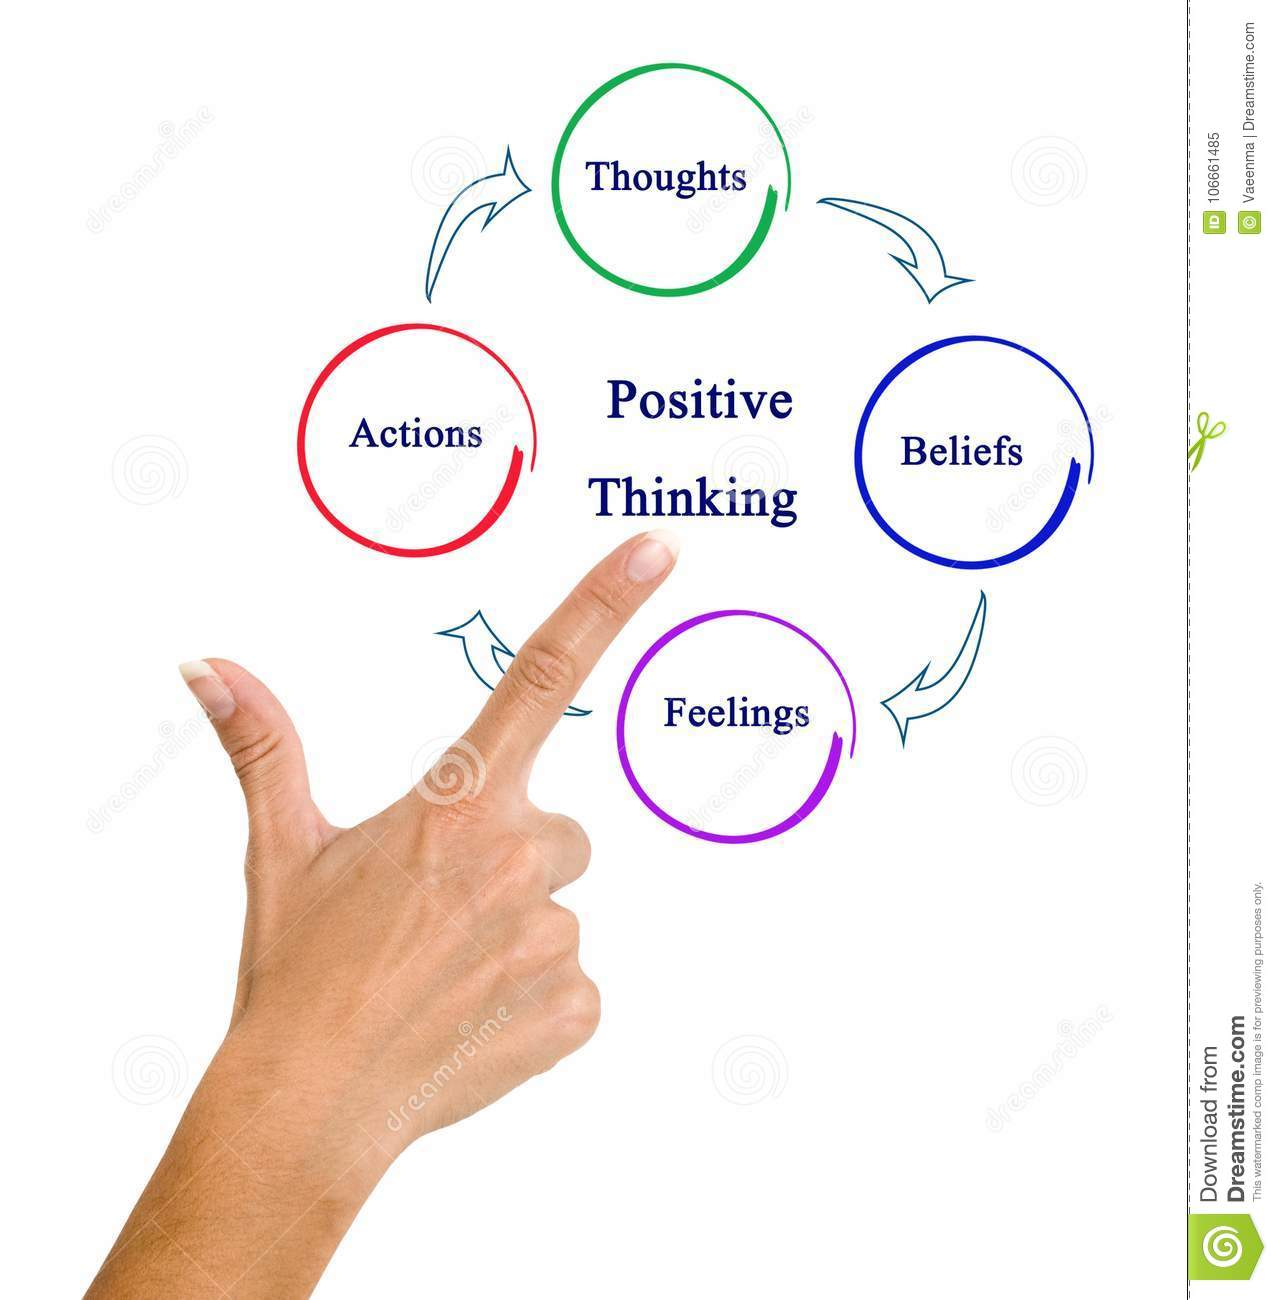 cycle of positive thinking stock image image of pointing 106661485 rh dreamstime com